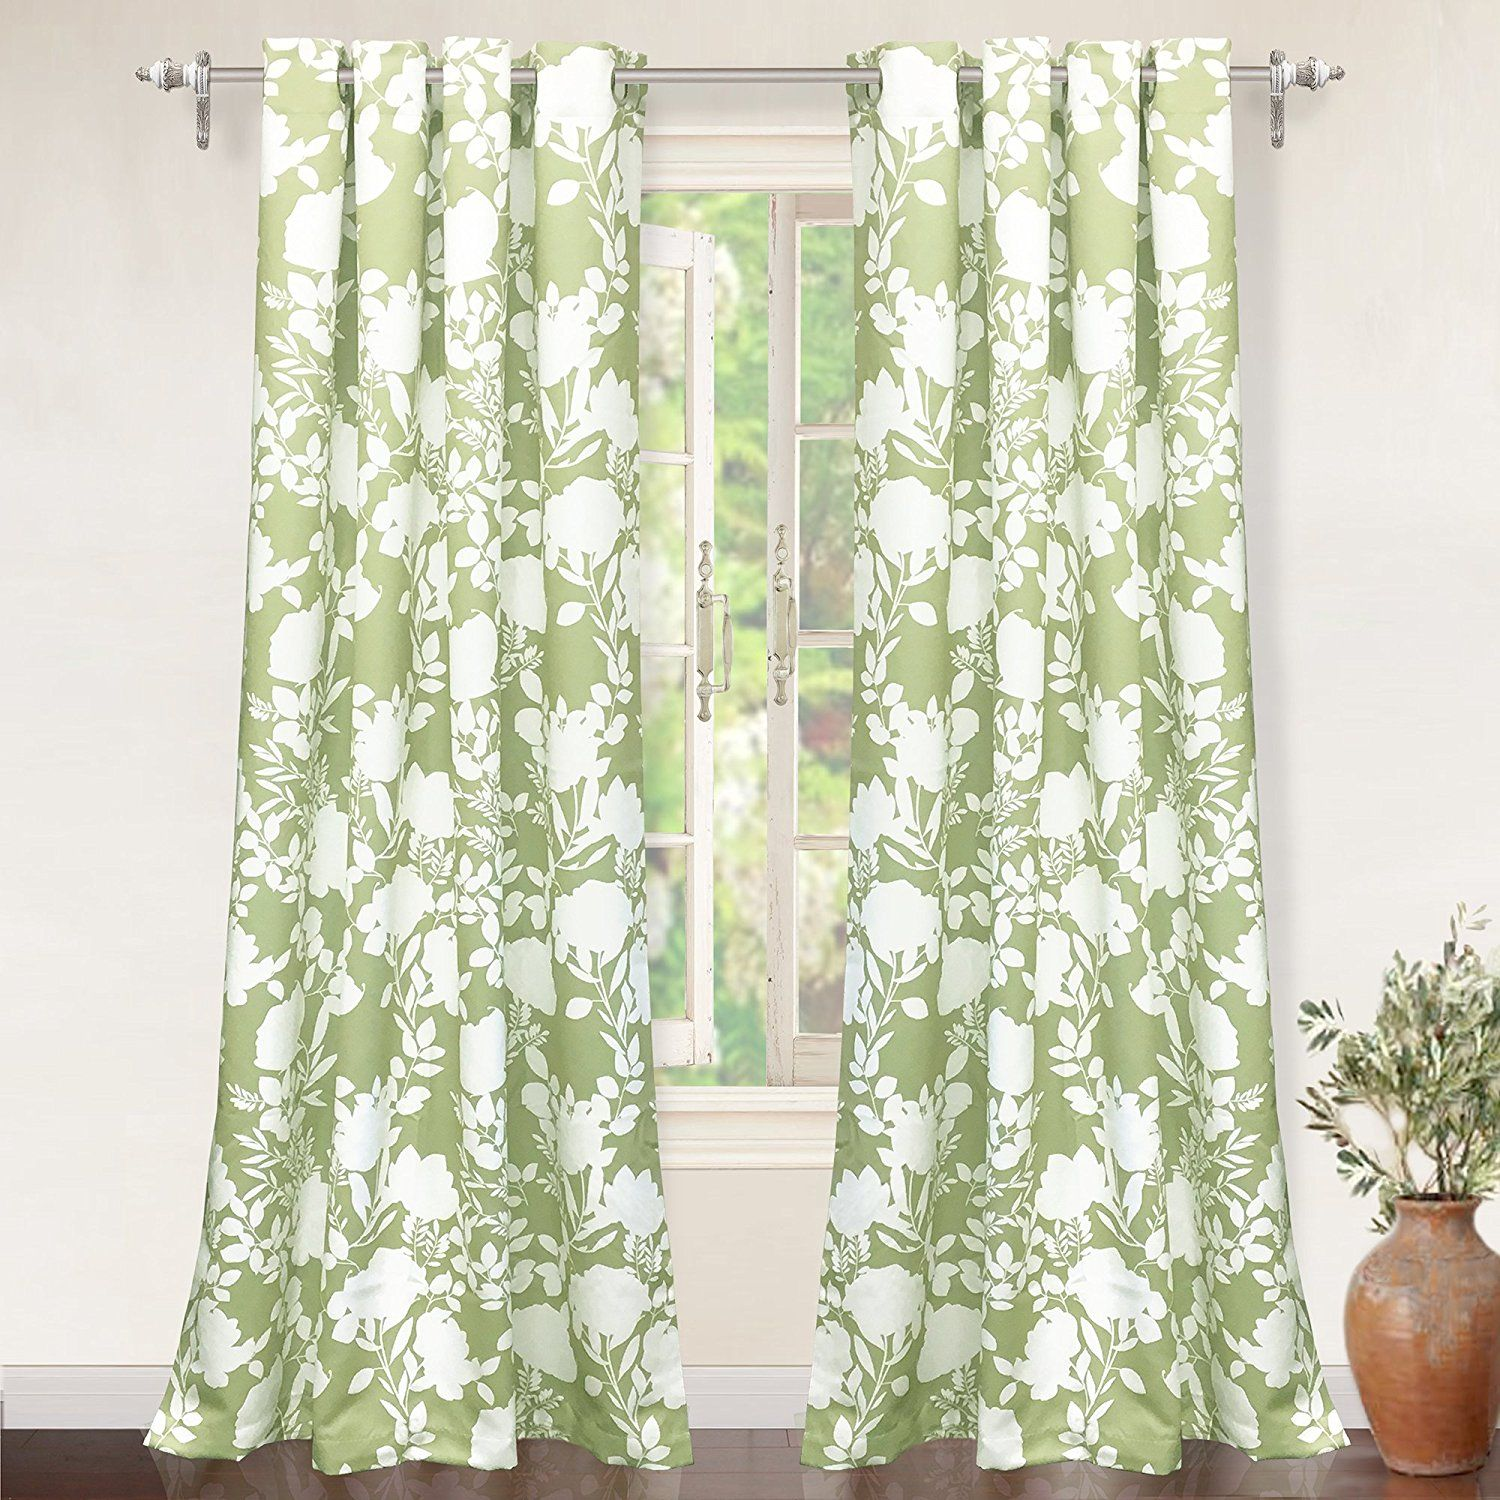 Driftaway Floral Delight Botanic Pattern Room Darkening Thermal Insulated Grommet Unlined Window Curtains Olive Green Panel Curtains Leaf Curtains Floral Room